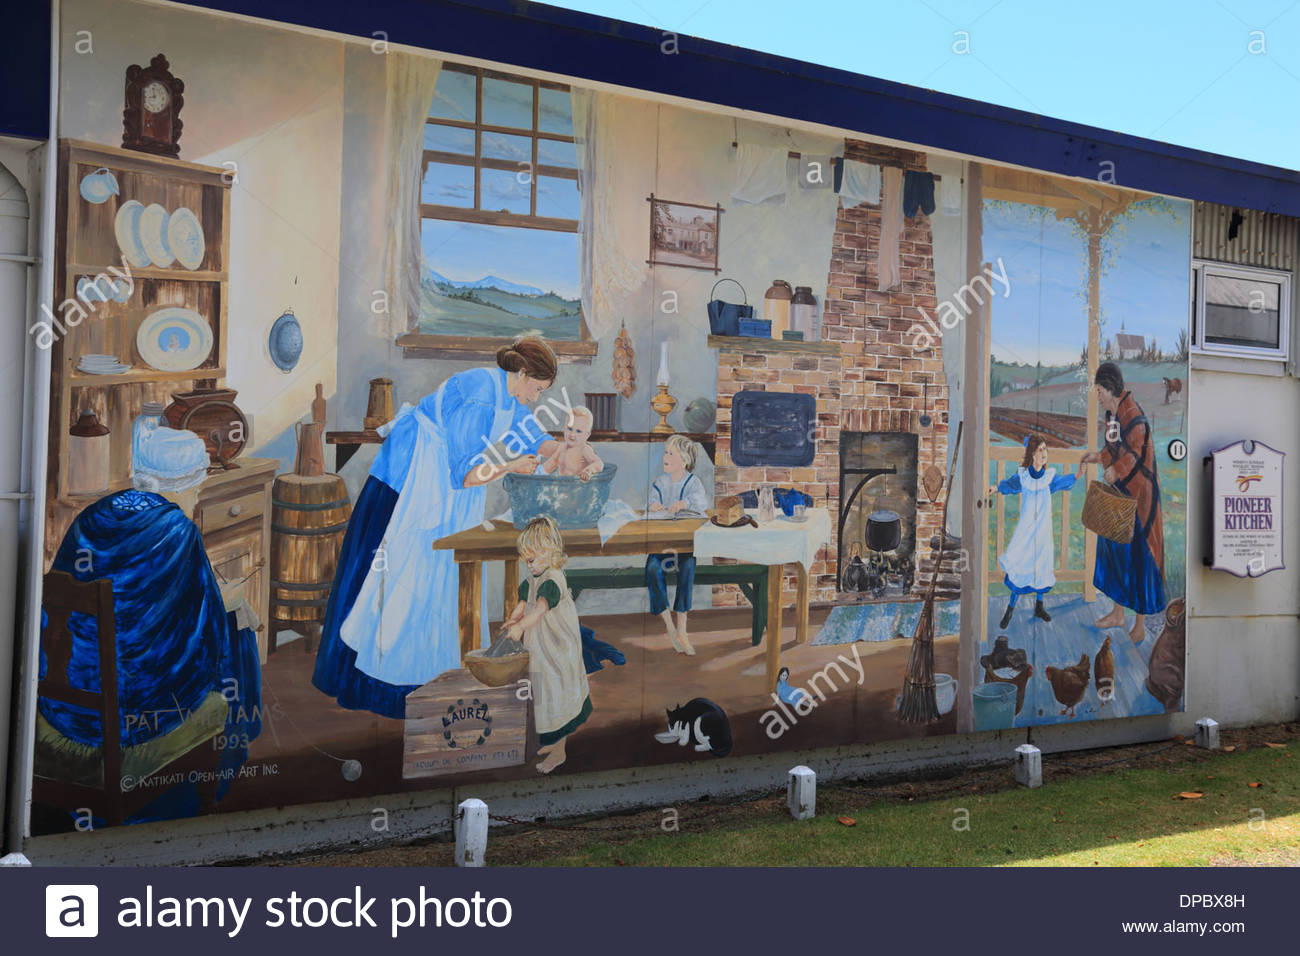 Kitchen Mural Pioneer Kitchen Mural Katikati New Zealand Stock Photo Royalty